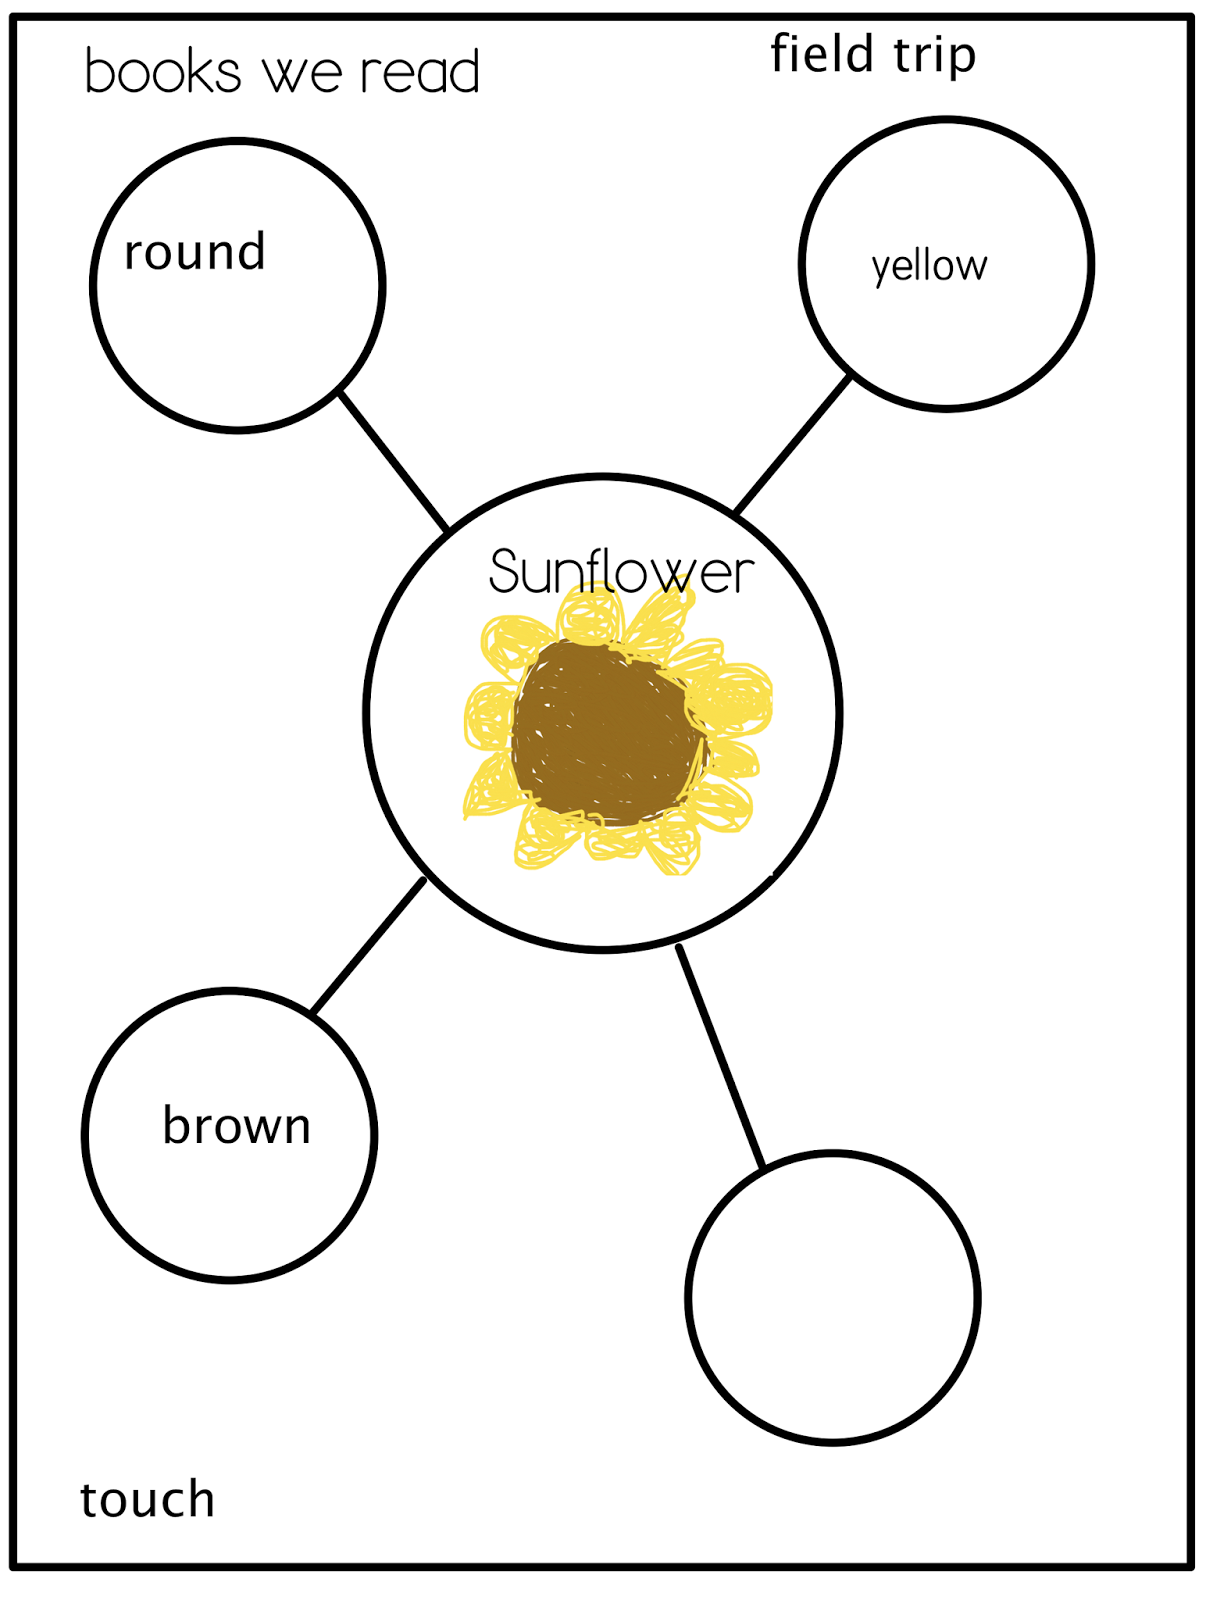 Joyful Learning In KC: Sunflowers and Summer